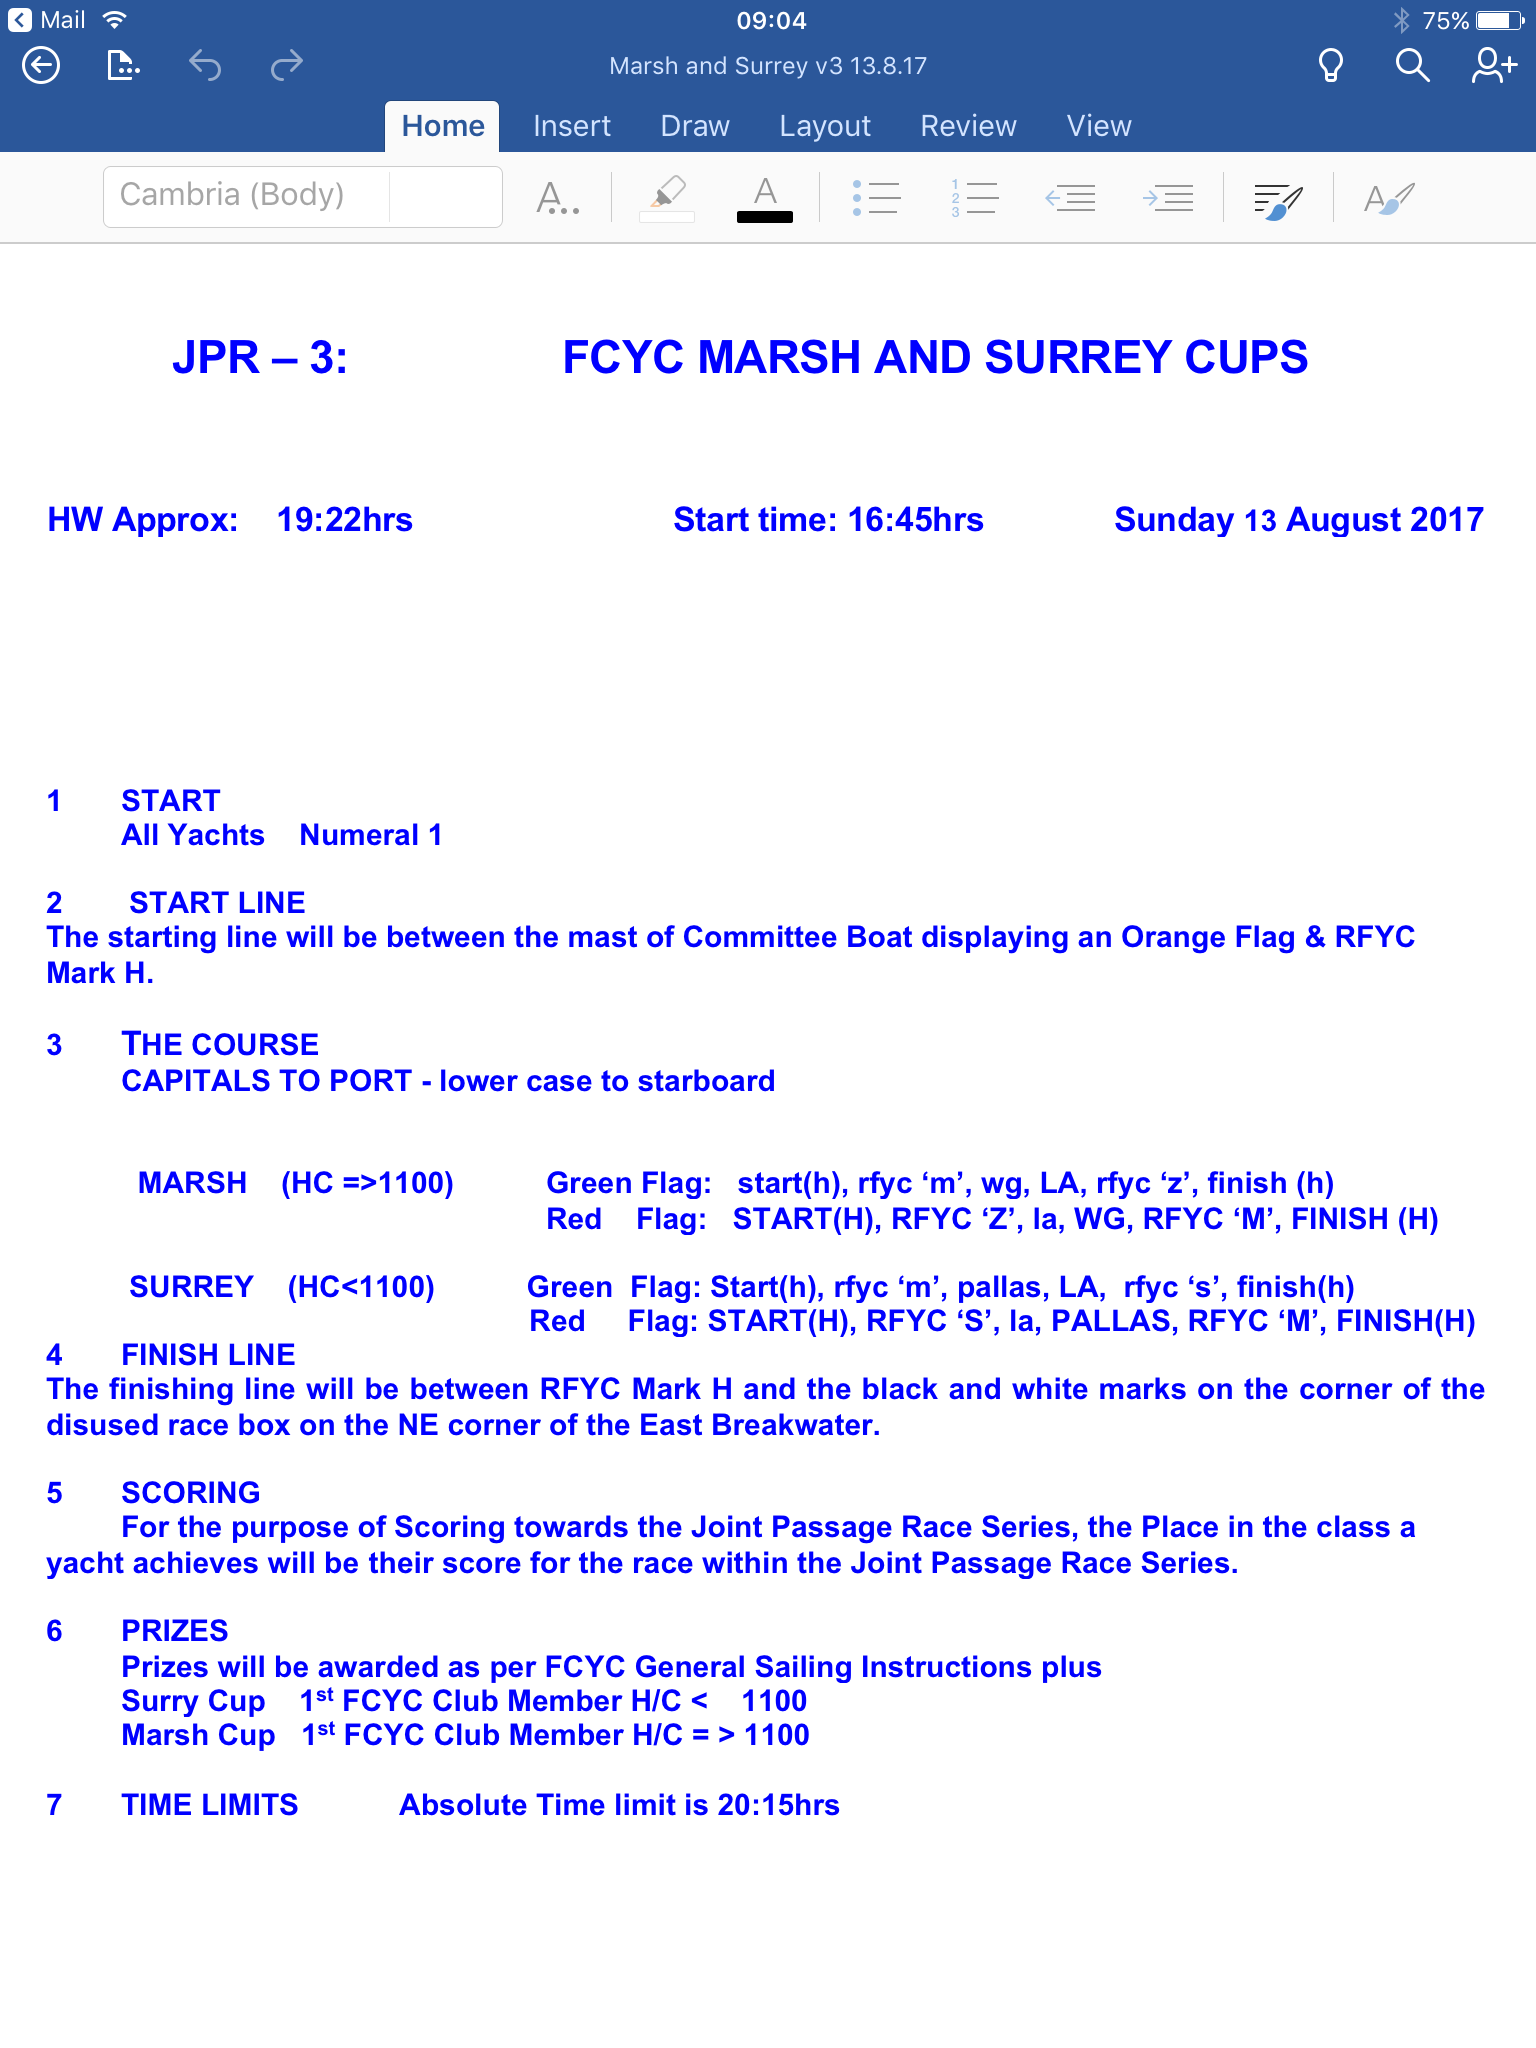 JPR-3 FCYC Marsh and Surrey cups 13 Aug NEW START TIME